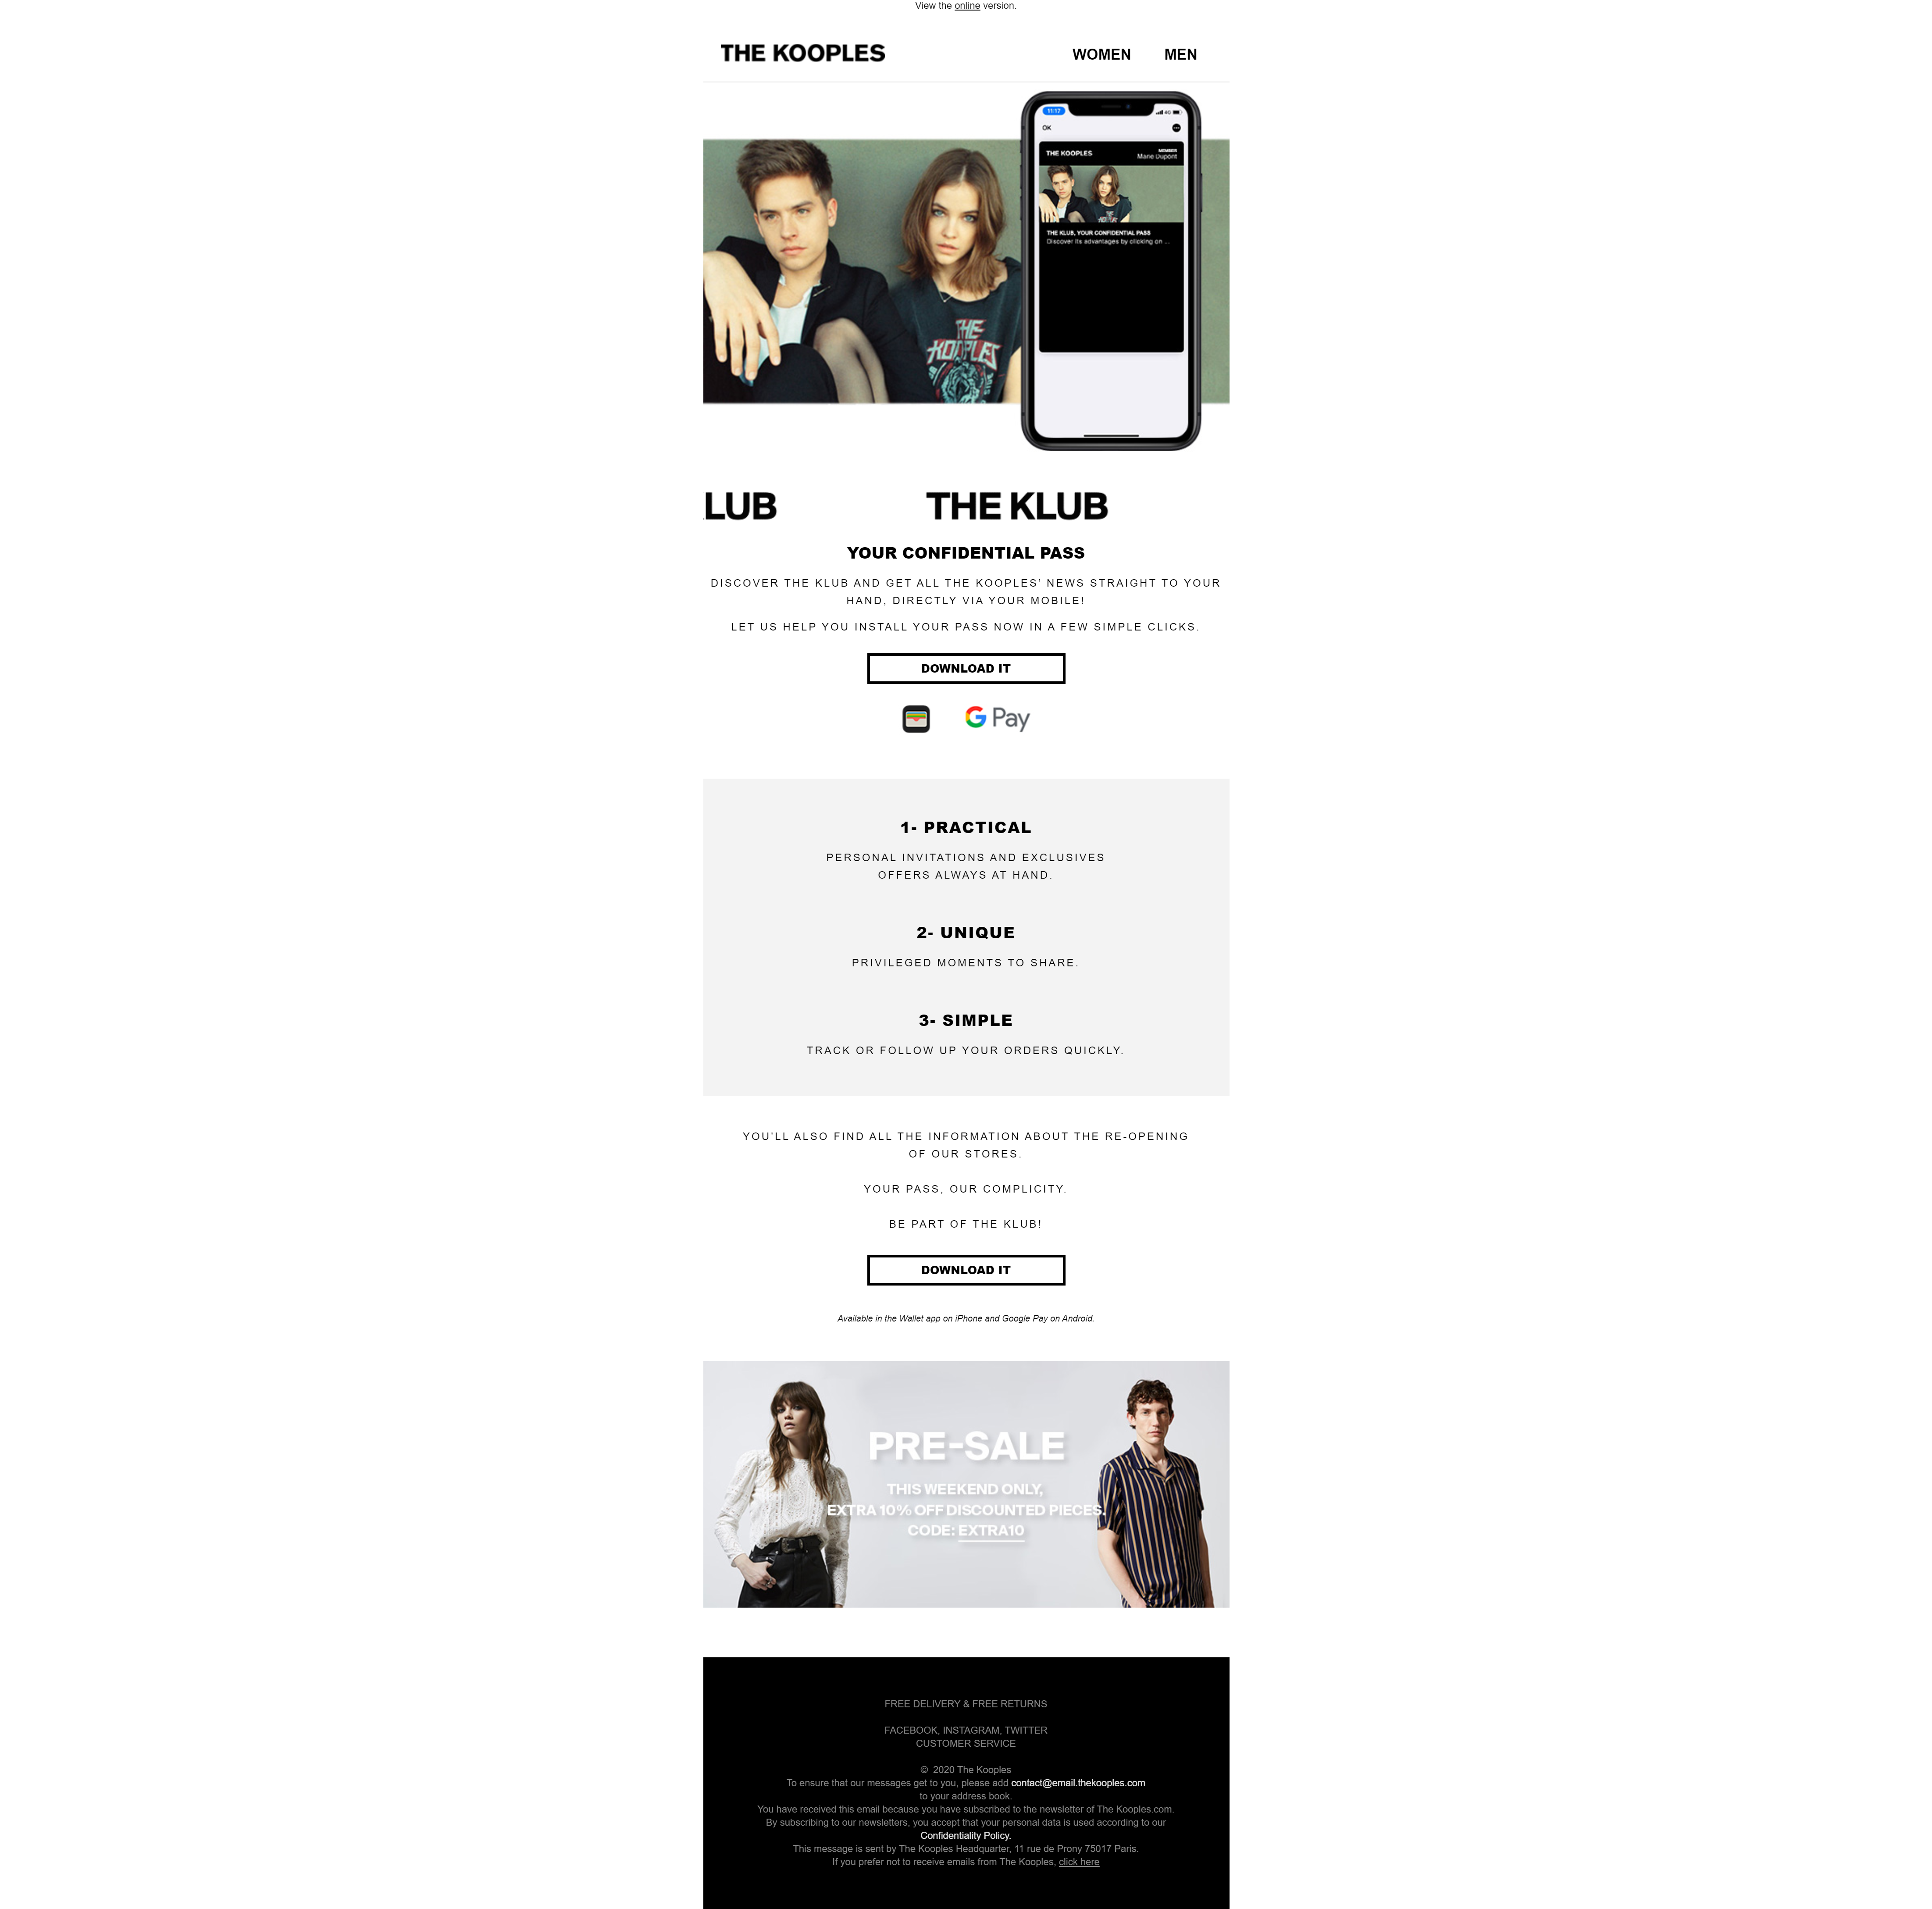 Kooples wallet email campaign